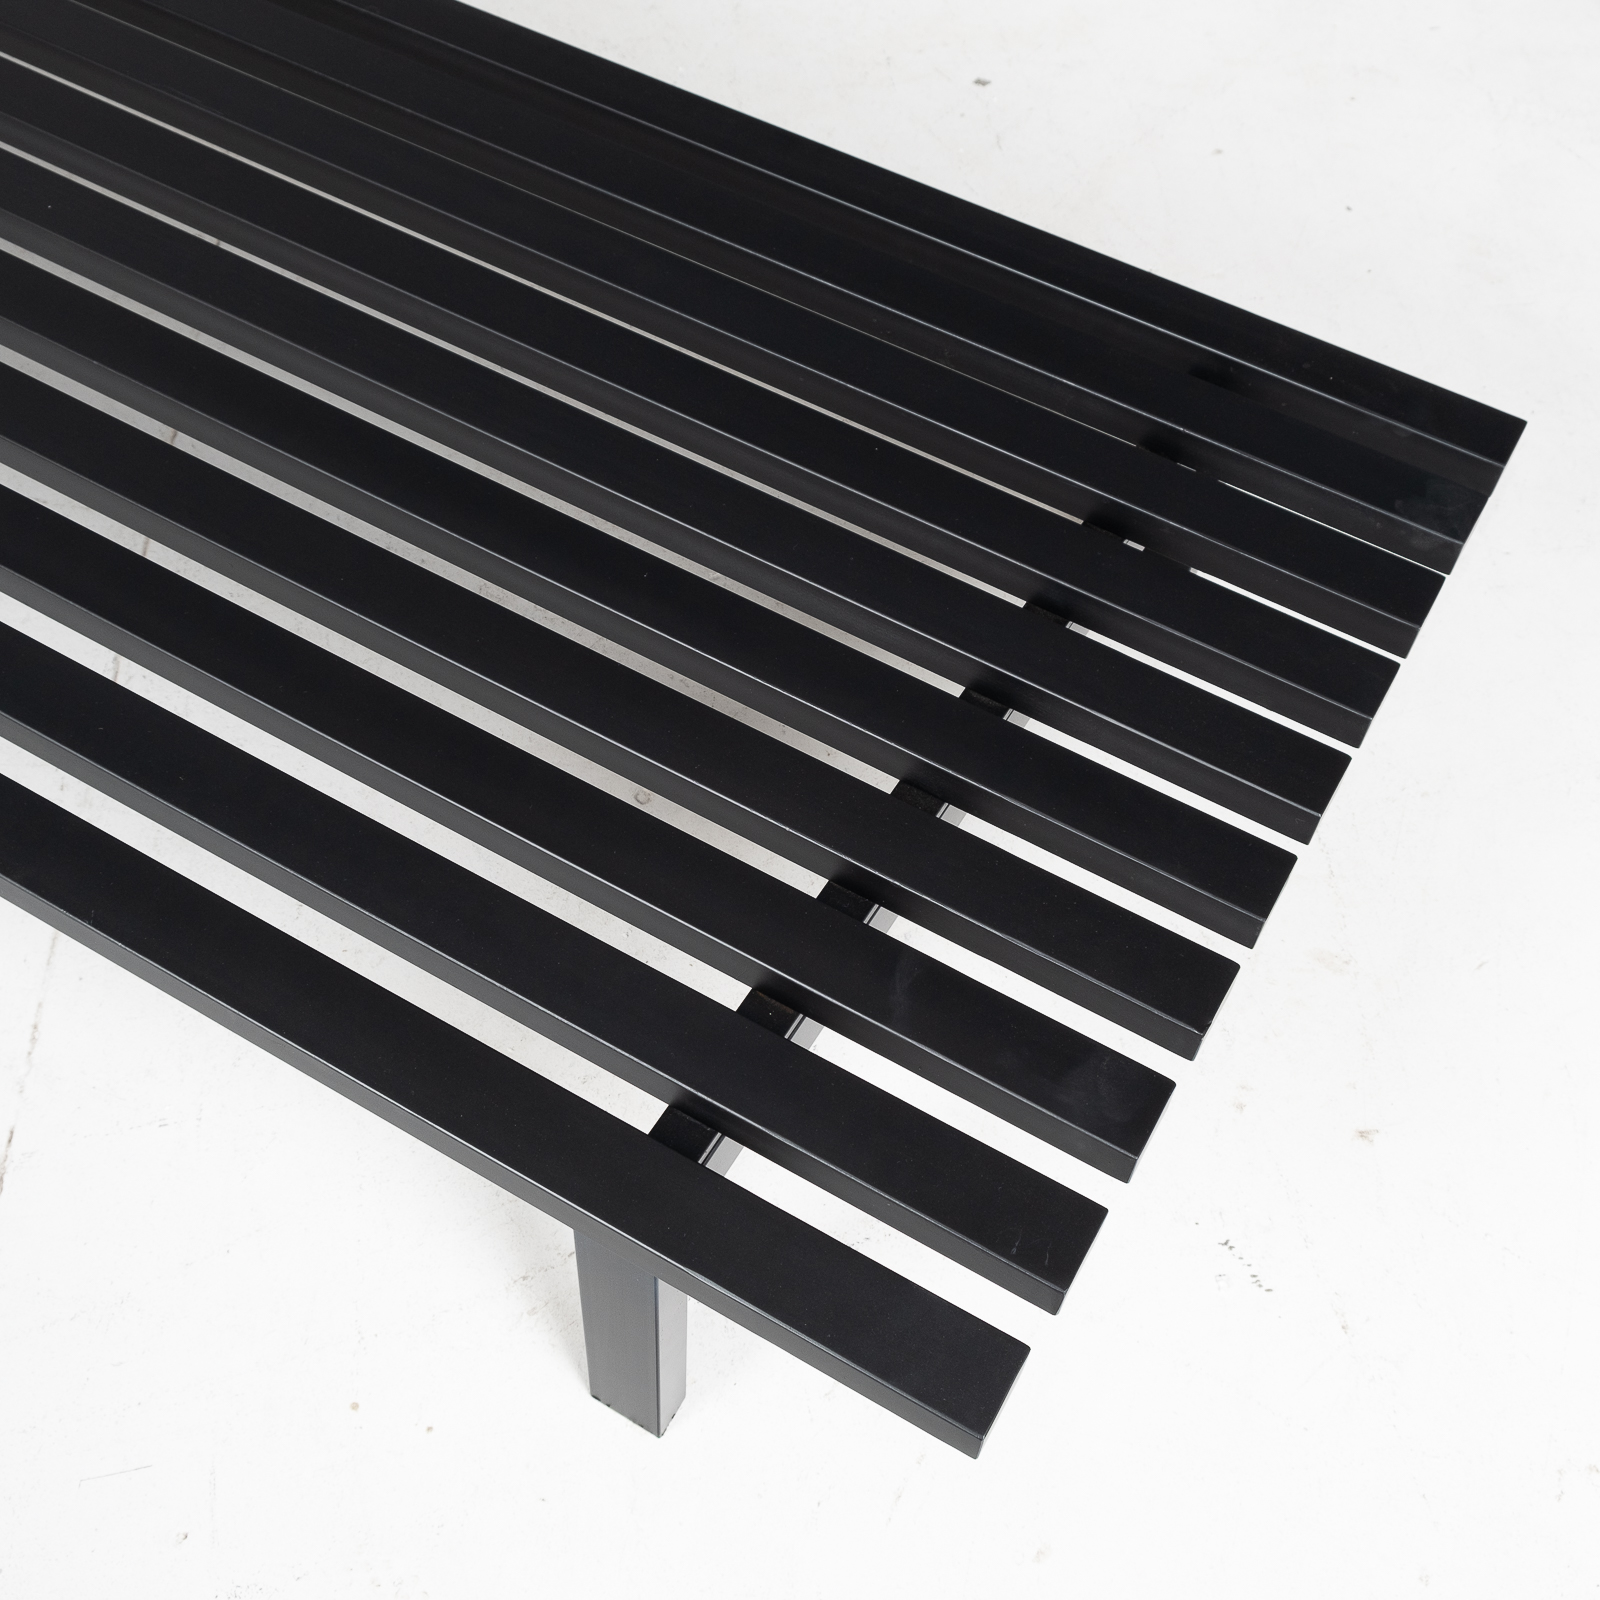 Model Bz82 Slatted Bench By Martin Visser For 't Spectrum, 1960s, The Netherlands3